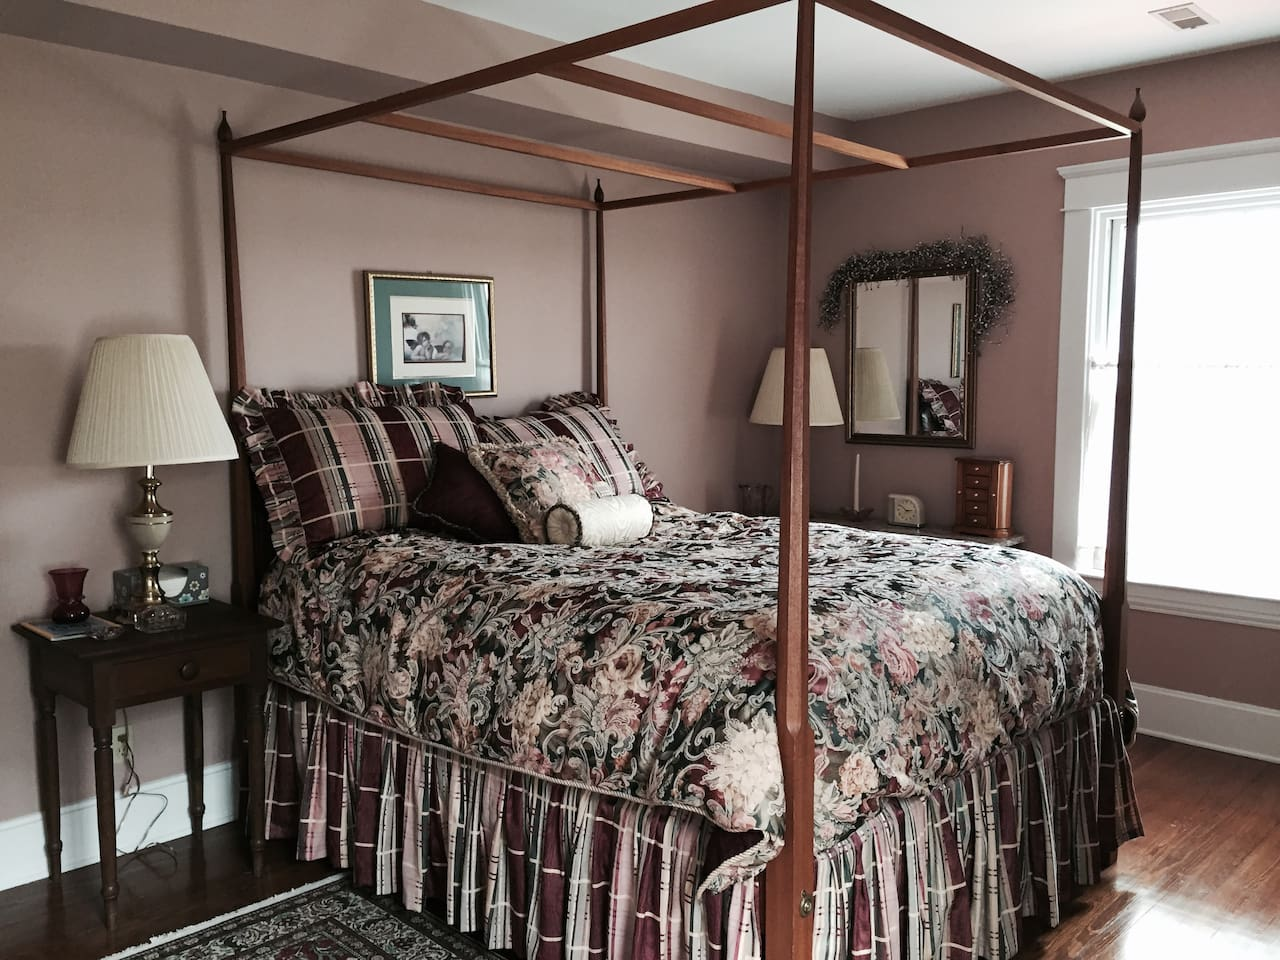 Queen-size poster bed with custom-made bedding is large and at front of the three story house.